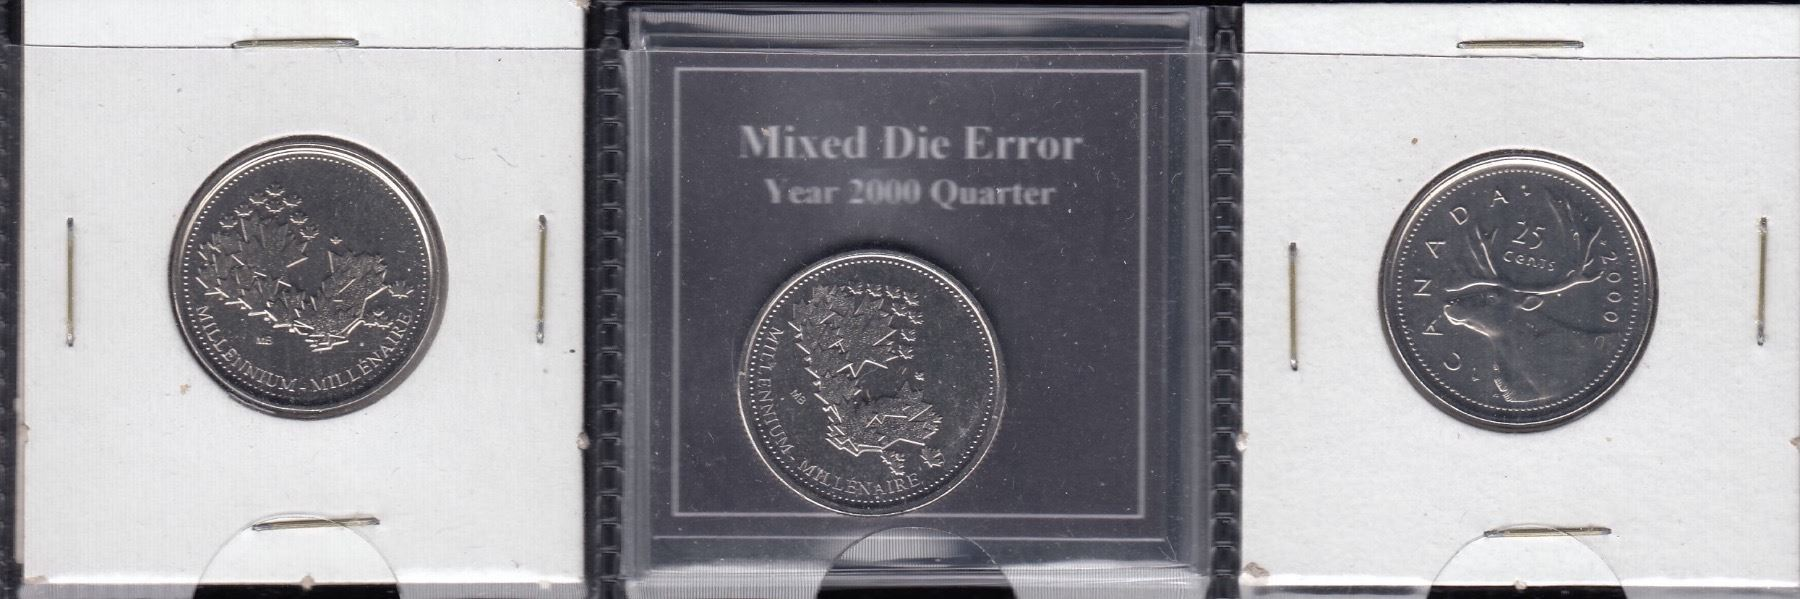 Canada 2000 Mule Twenty-Five Cents Medal/Coin Error